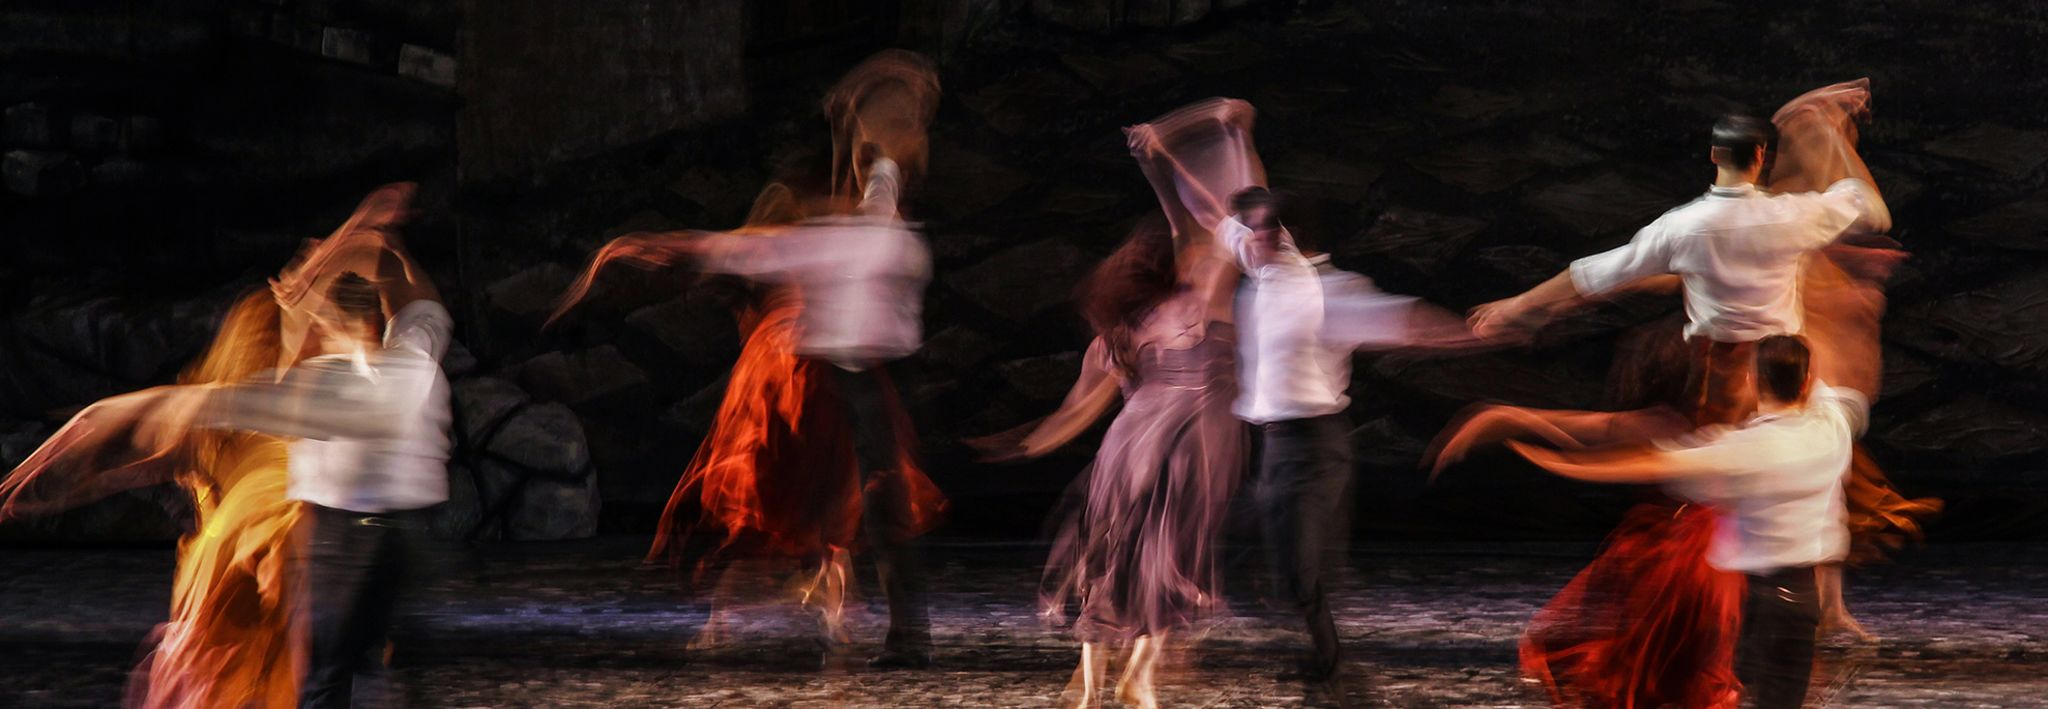 Artsy picture of blurred dancers.